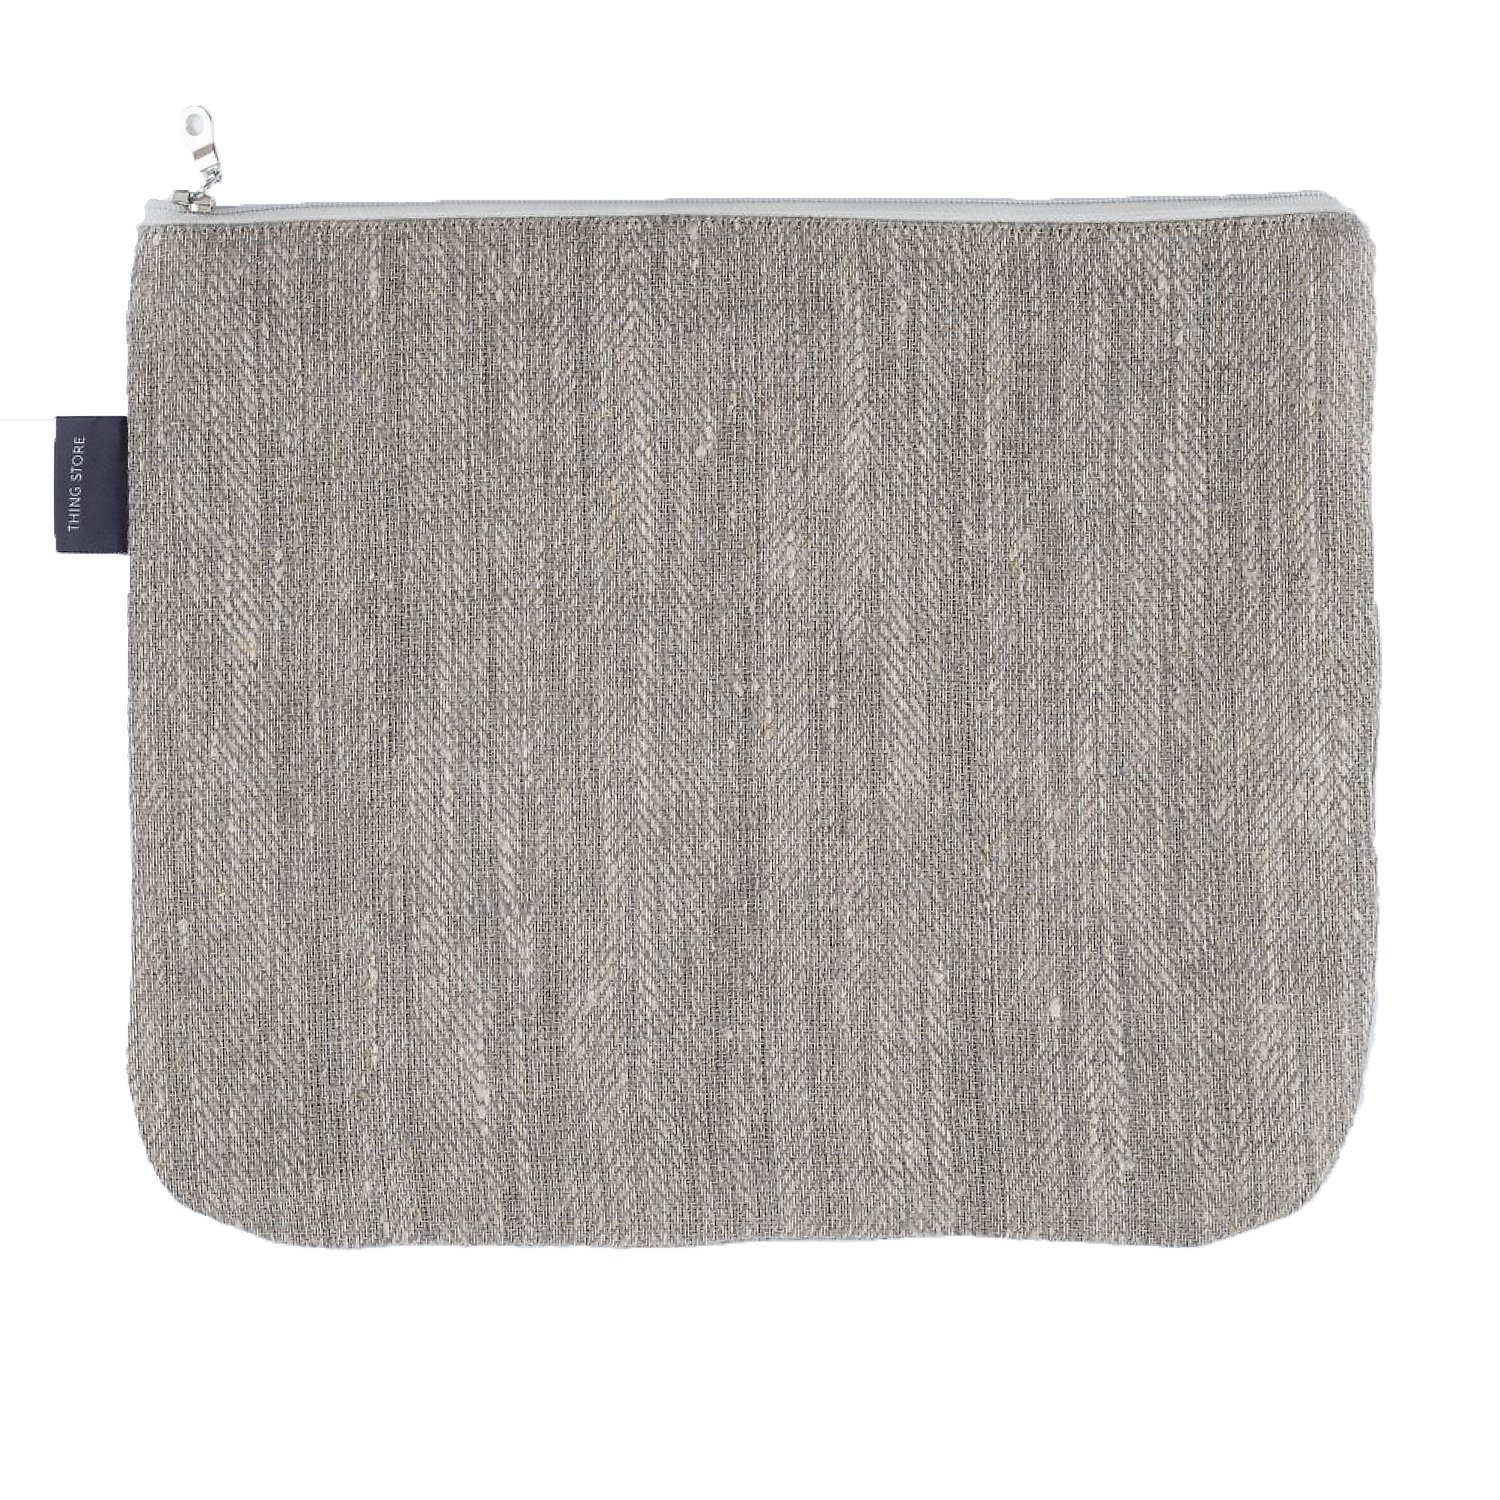 Large Canvas Toiletry Bag - Organic 100% Linen Makeup Bag (Gray) ThingStories